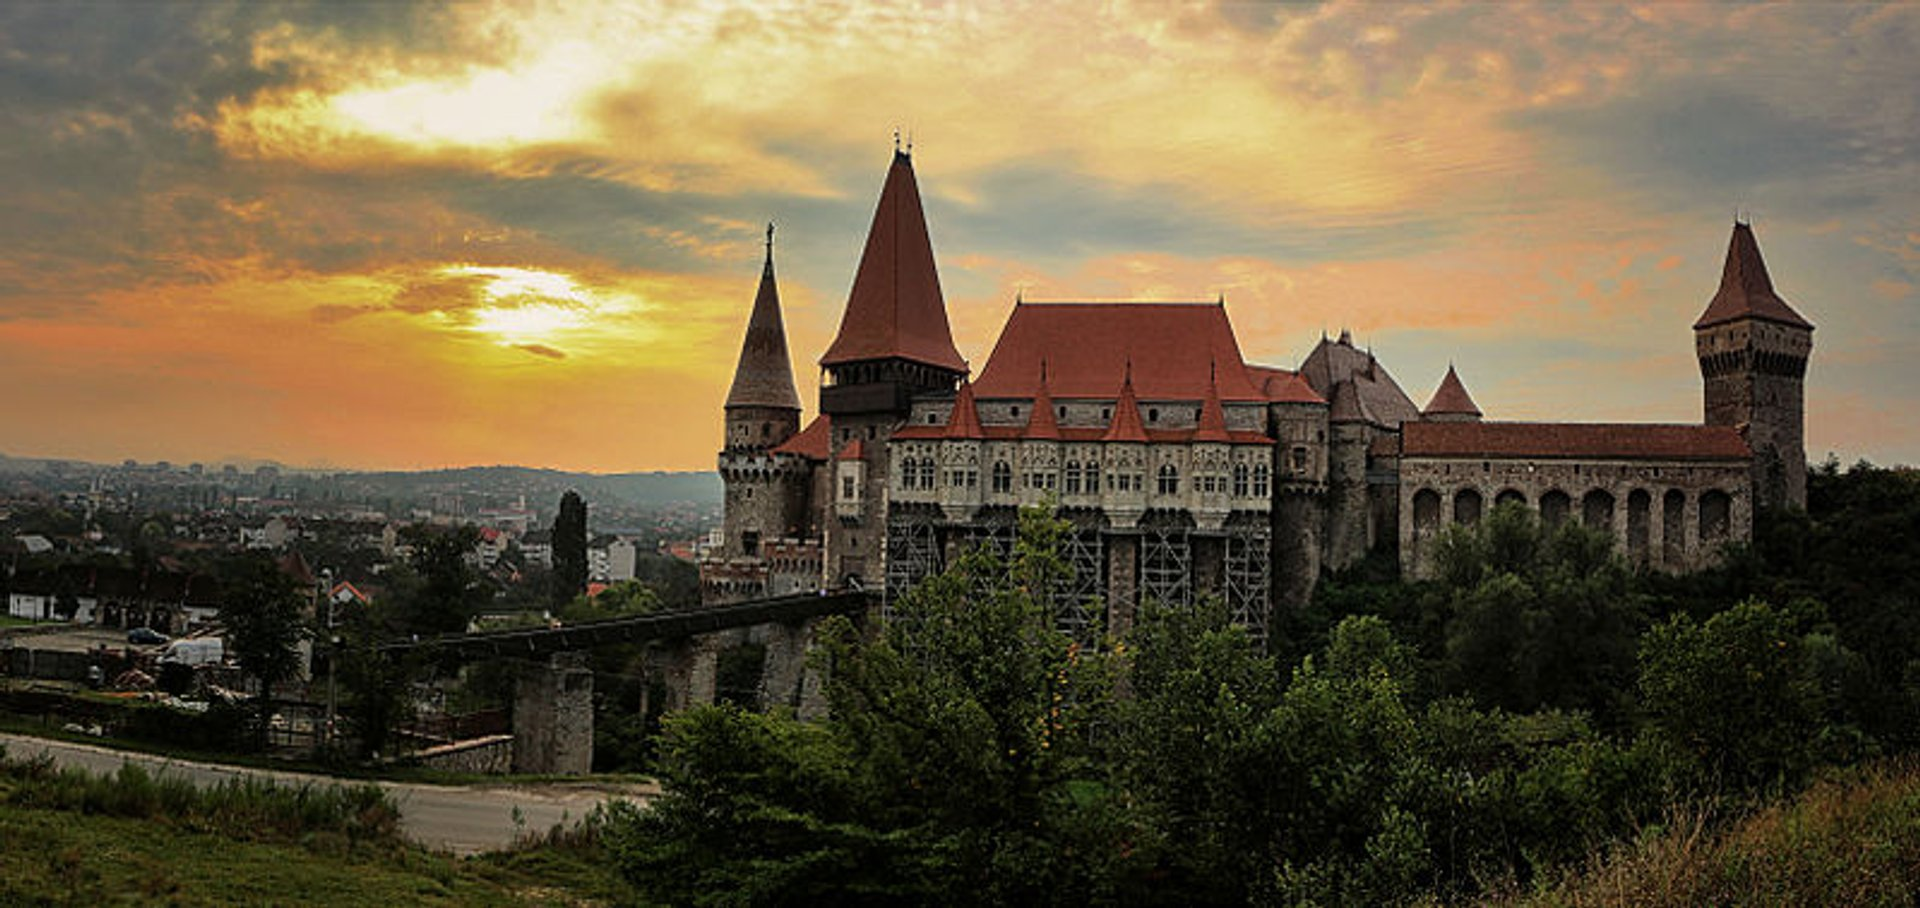 Best time for Corvin Castle (Castelul Corvinilor) 2020